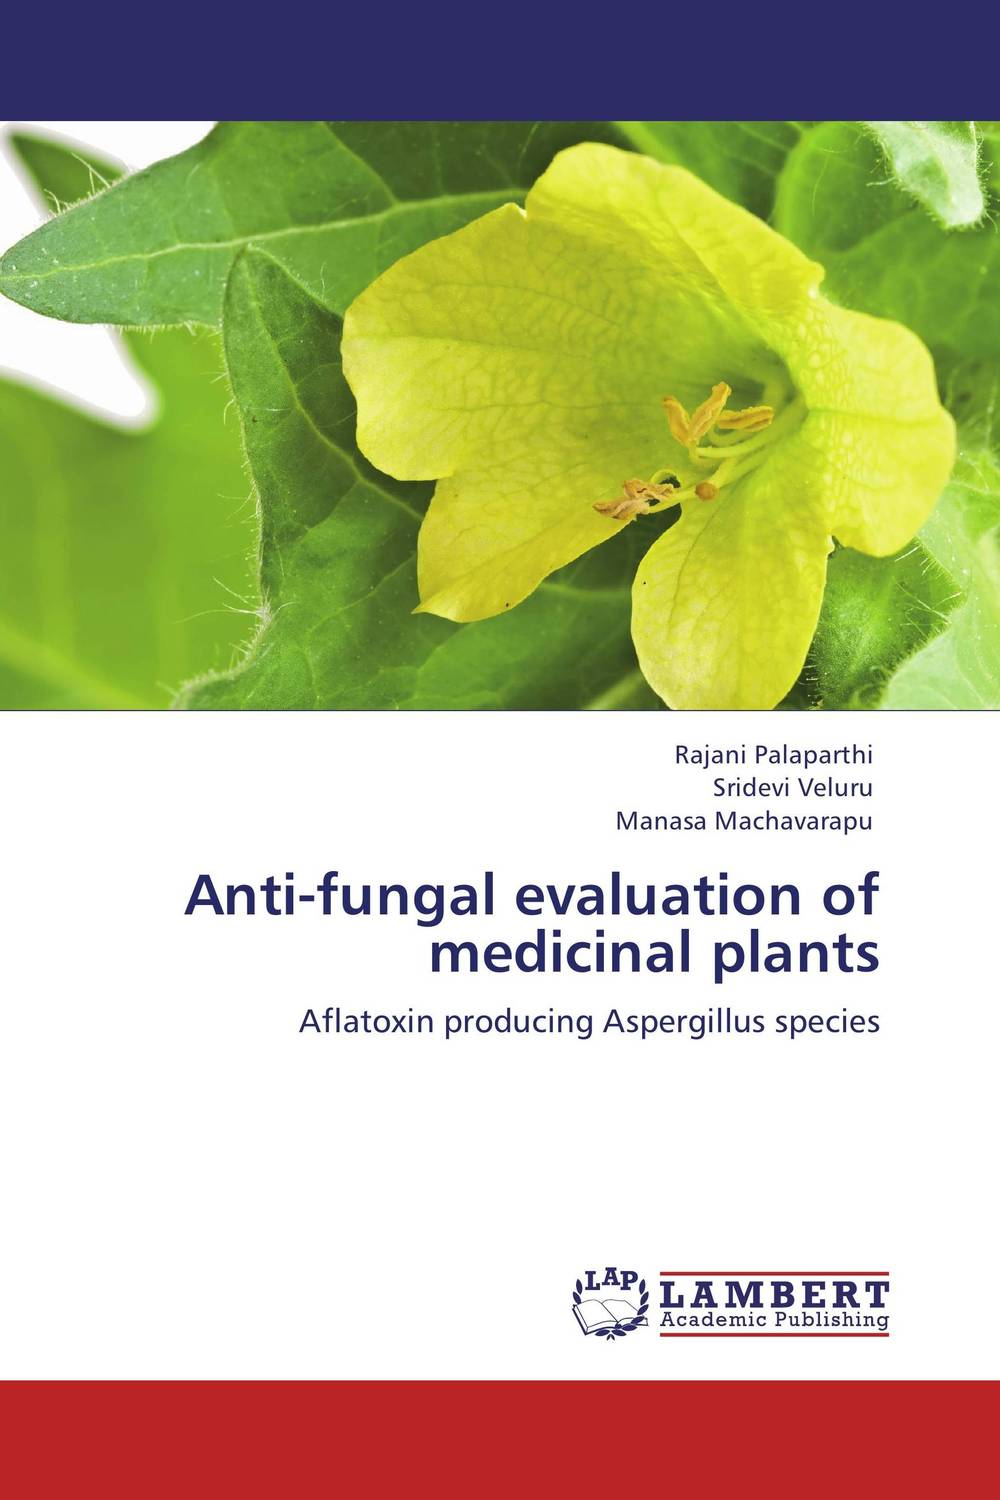 Anti-fungal evaluation of medicinal plants effect of medicinal plant extracts on the viability of protoscoleces